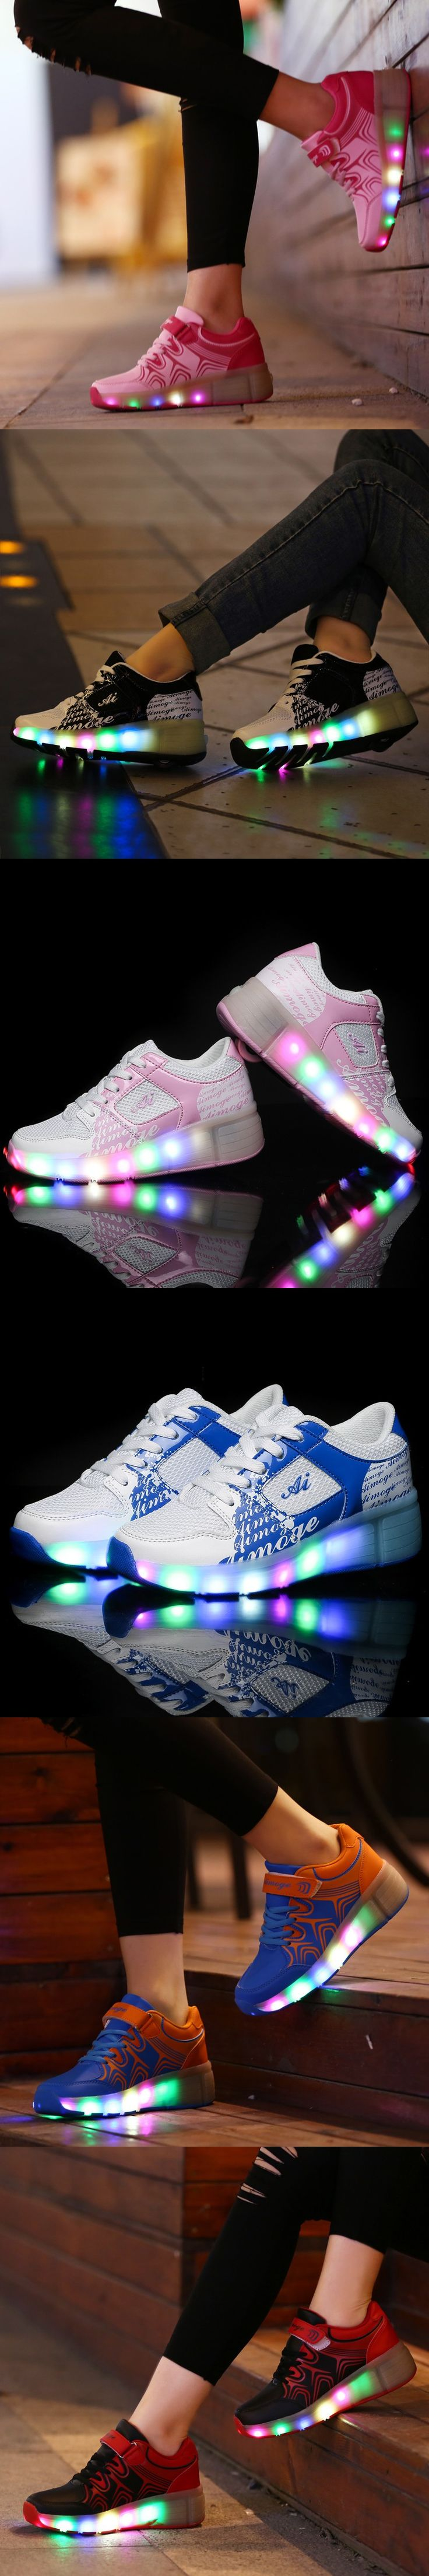 2016Children Heelys Wheels Shoes with Led Light New Brand Kids Roller Skate Sneakers Boys Girls Luminous Glowing Fashion Shoes